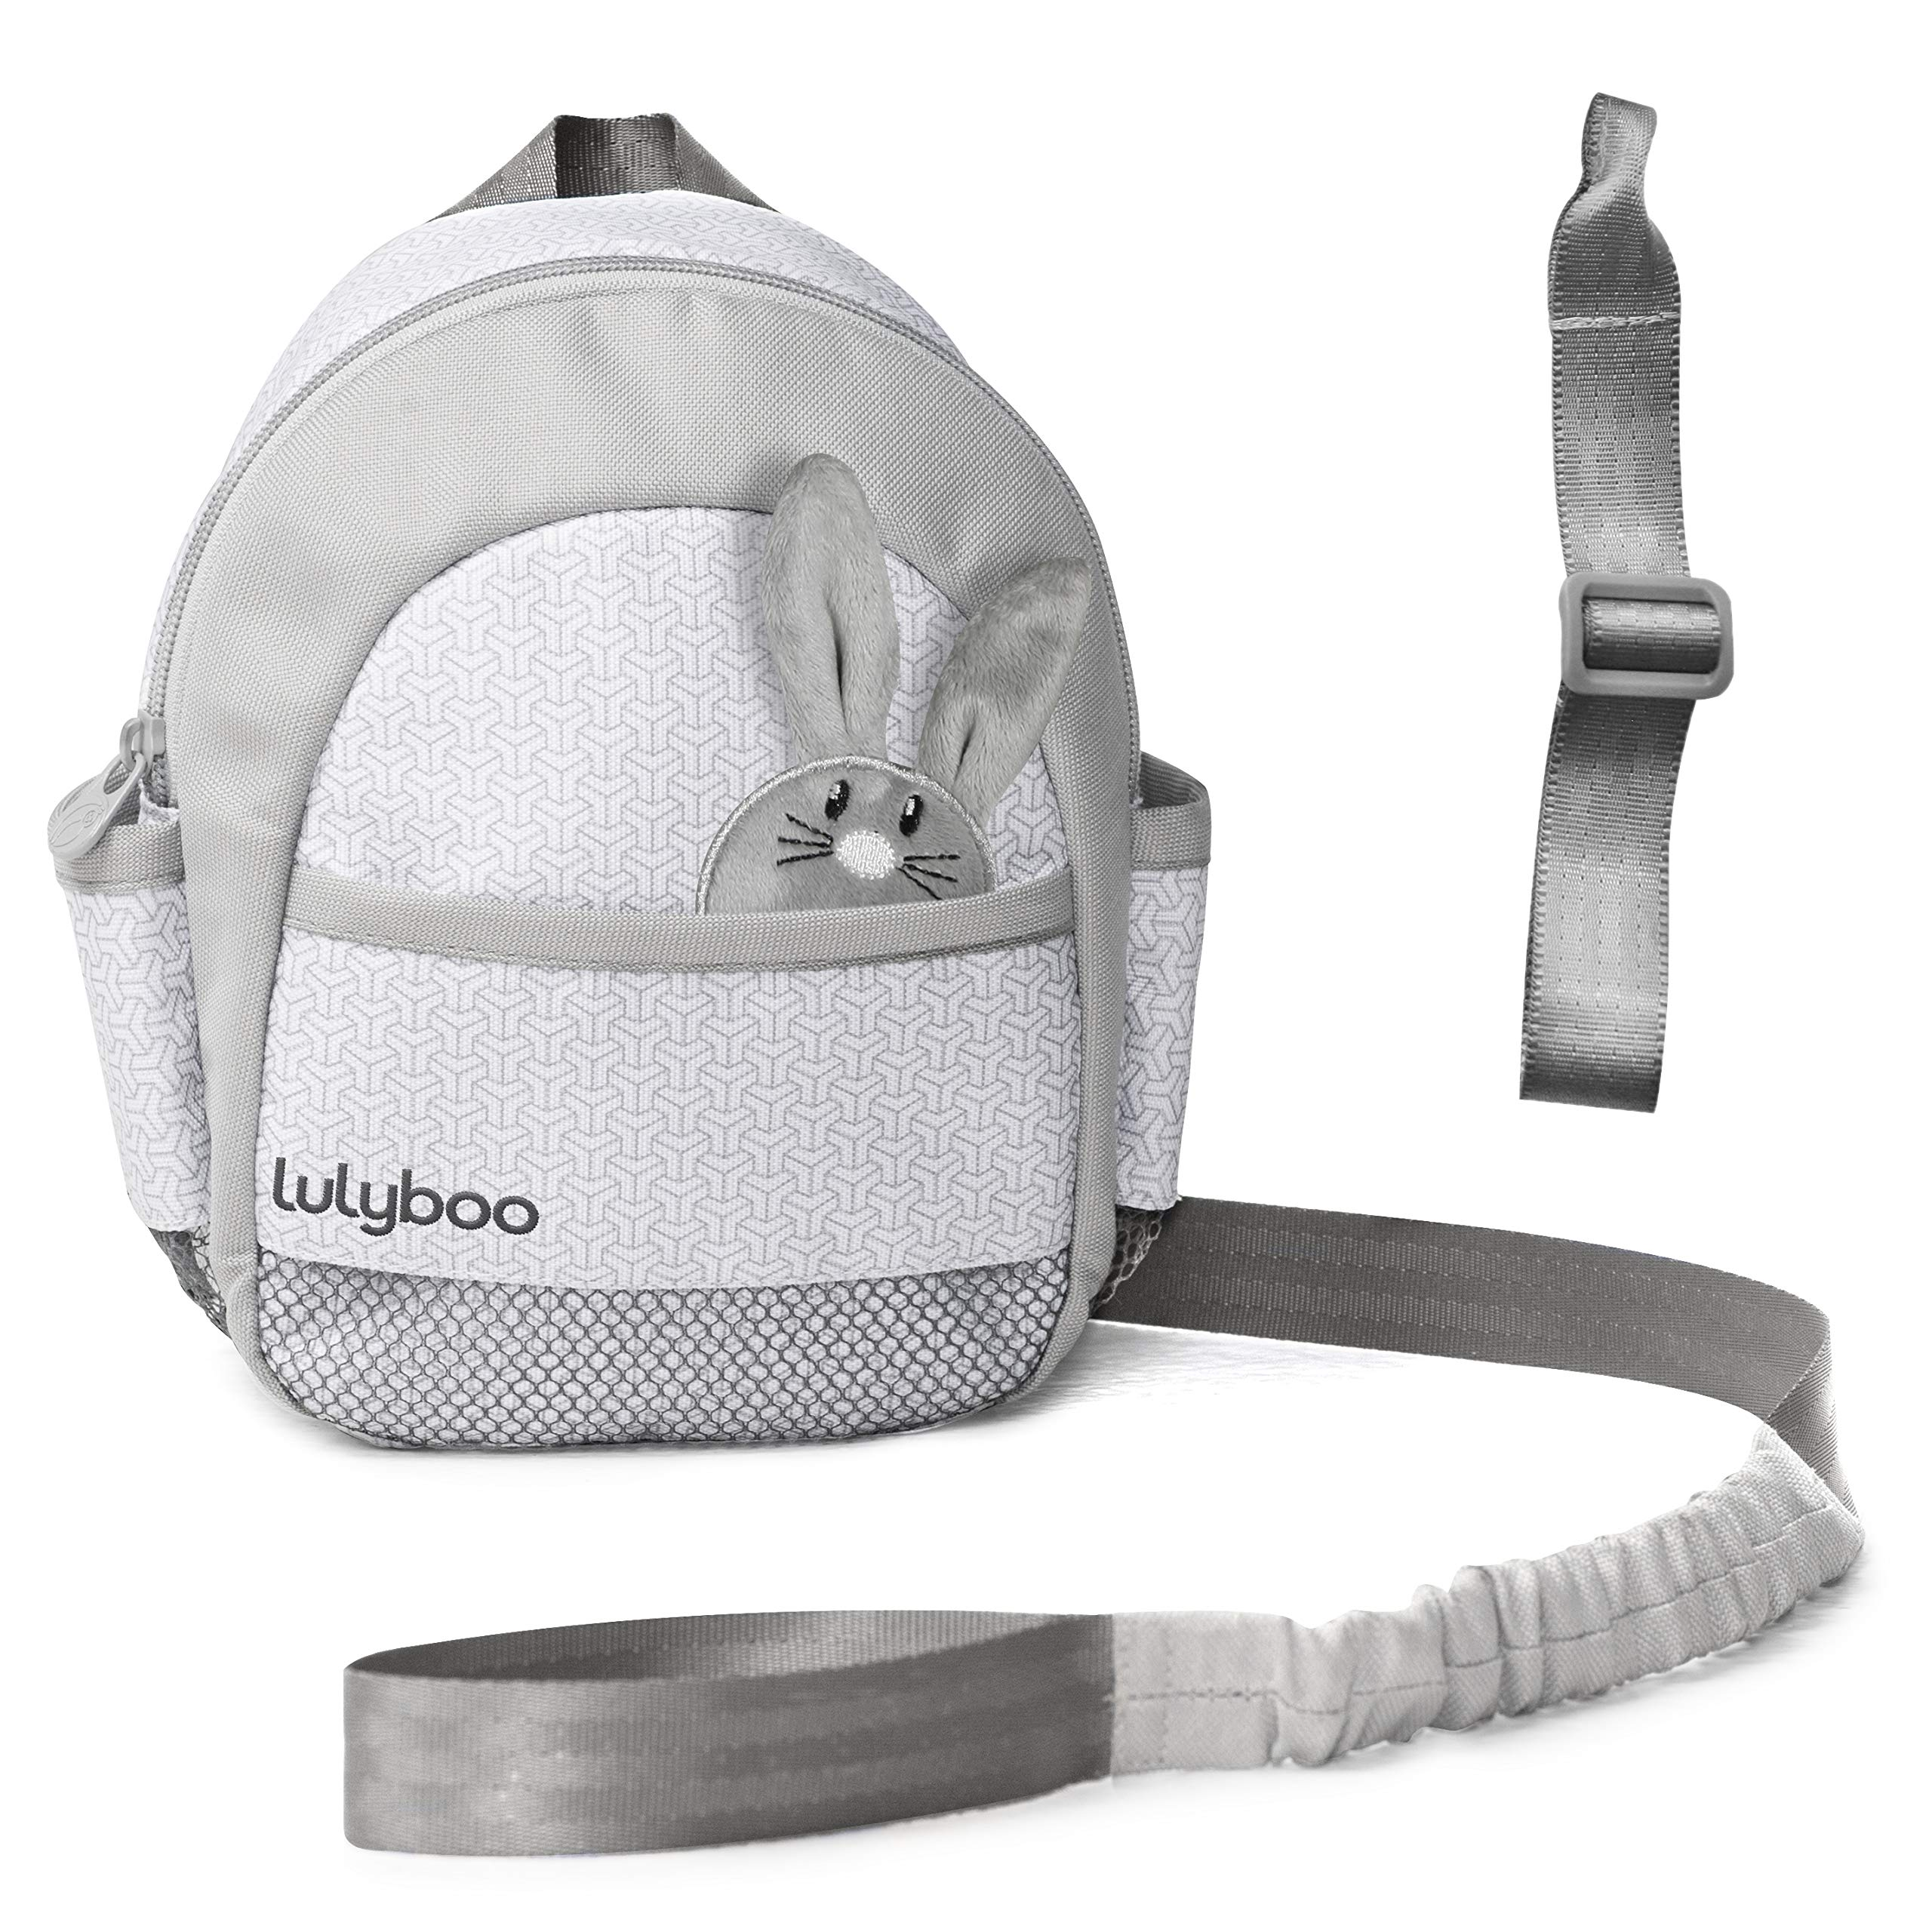 Lulyboo Toddler Safety Harness and Backpack